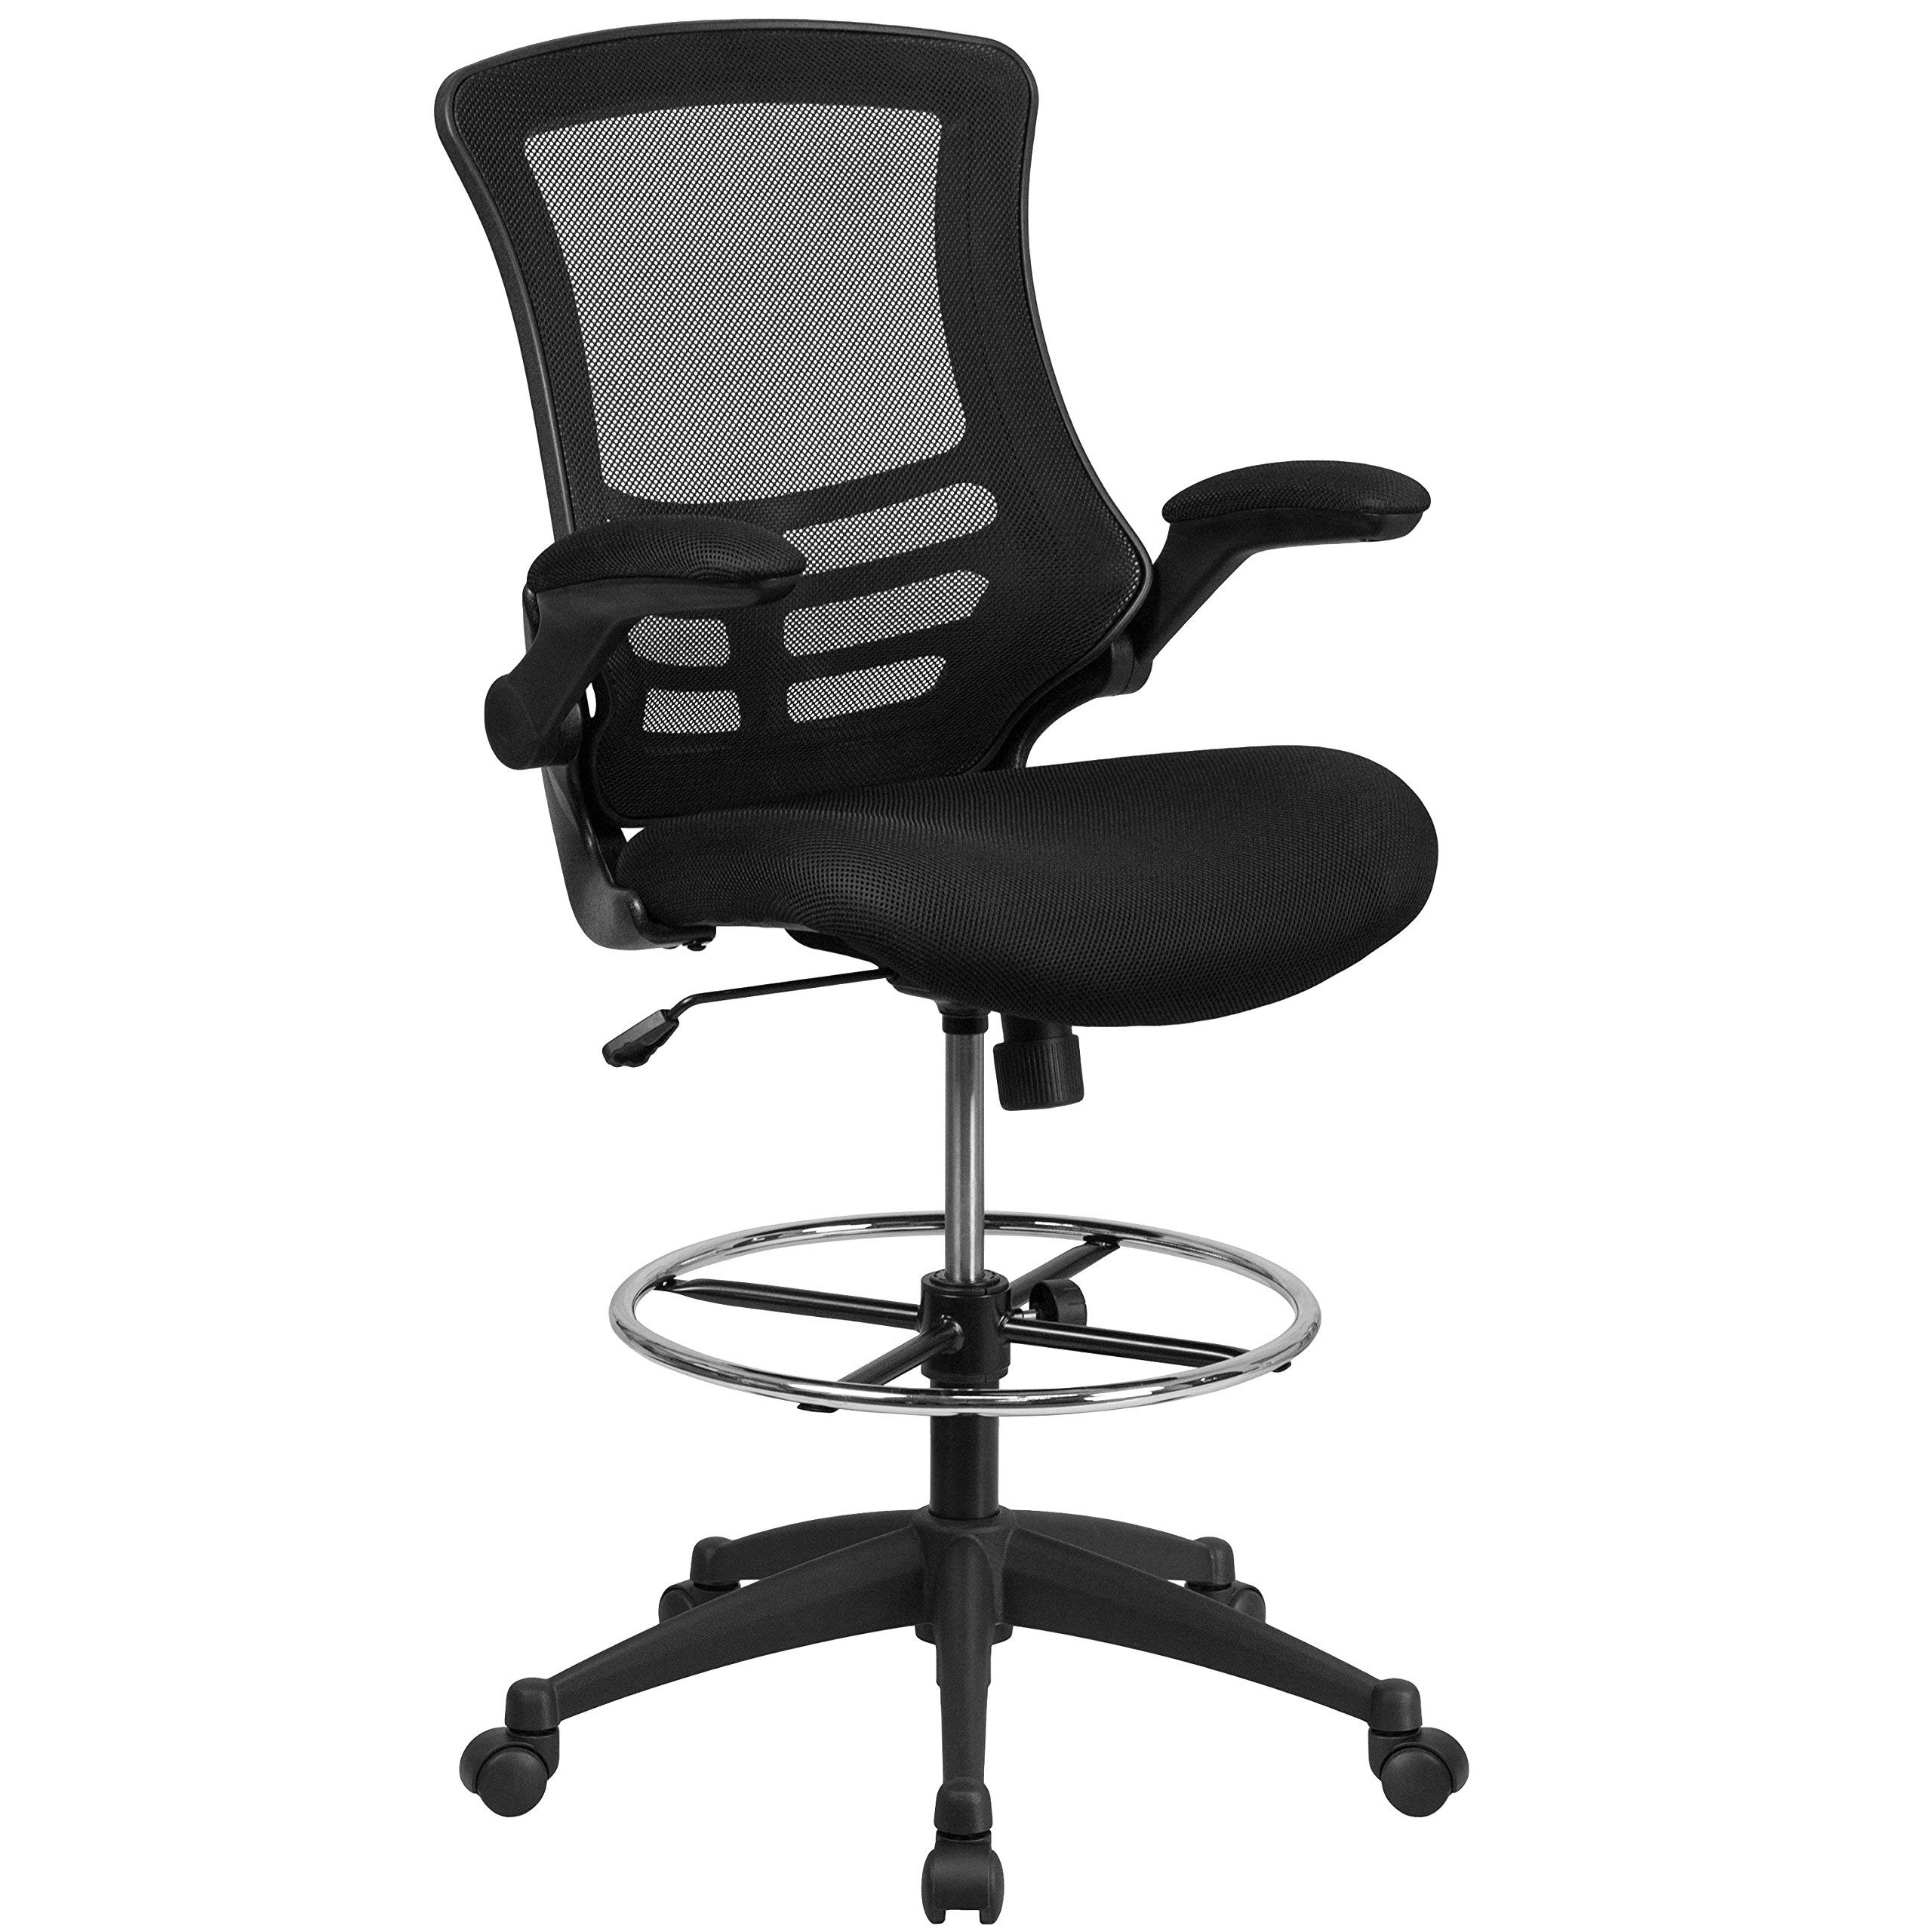 Flash Furniture Mid-Back Black Mesh Drafting Chair with Adjustable Foot Ring and Flip-Up Arms - BL-X-5M-D-GG (Renewed) by Flash Furniture